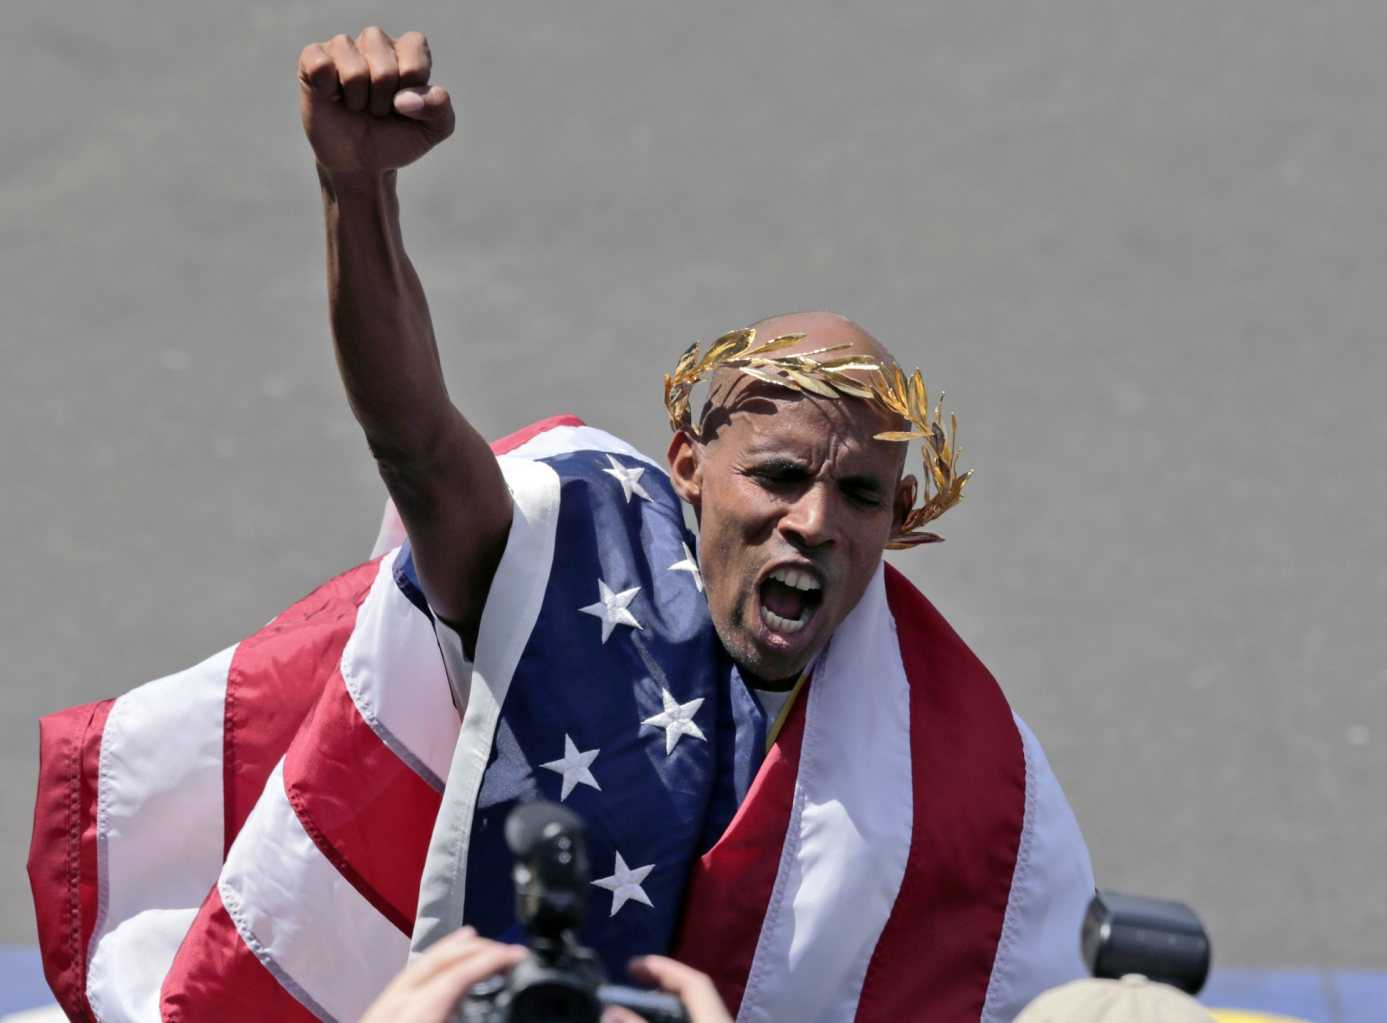 Athletics: Ethiopia's champions in Boston to defend marathon titles